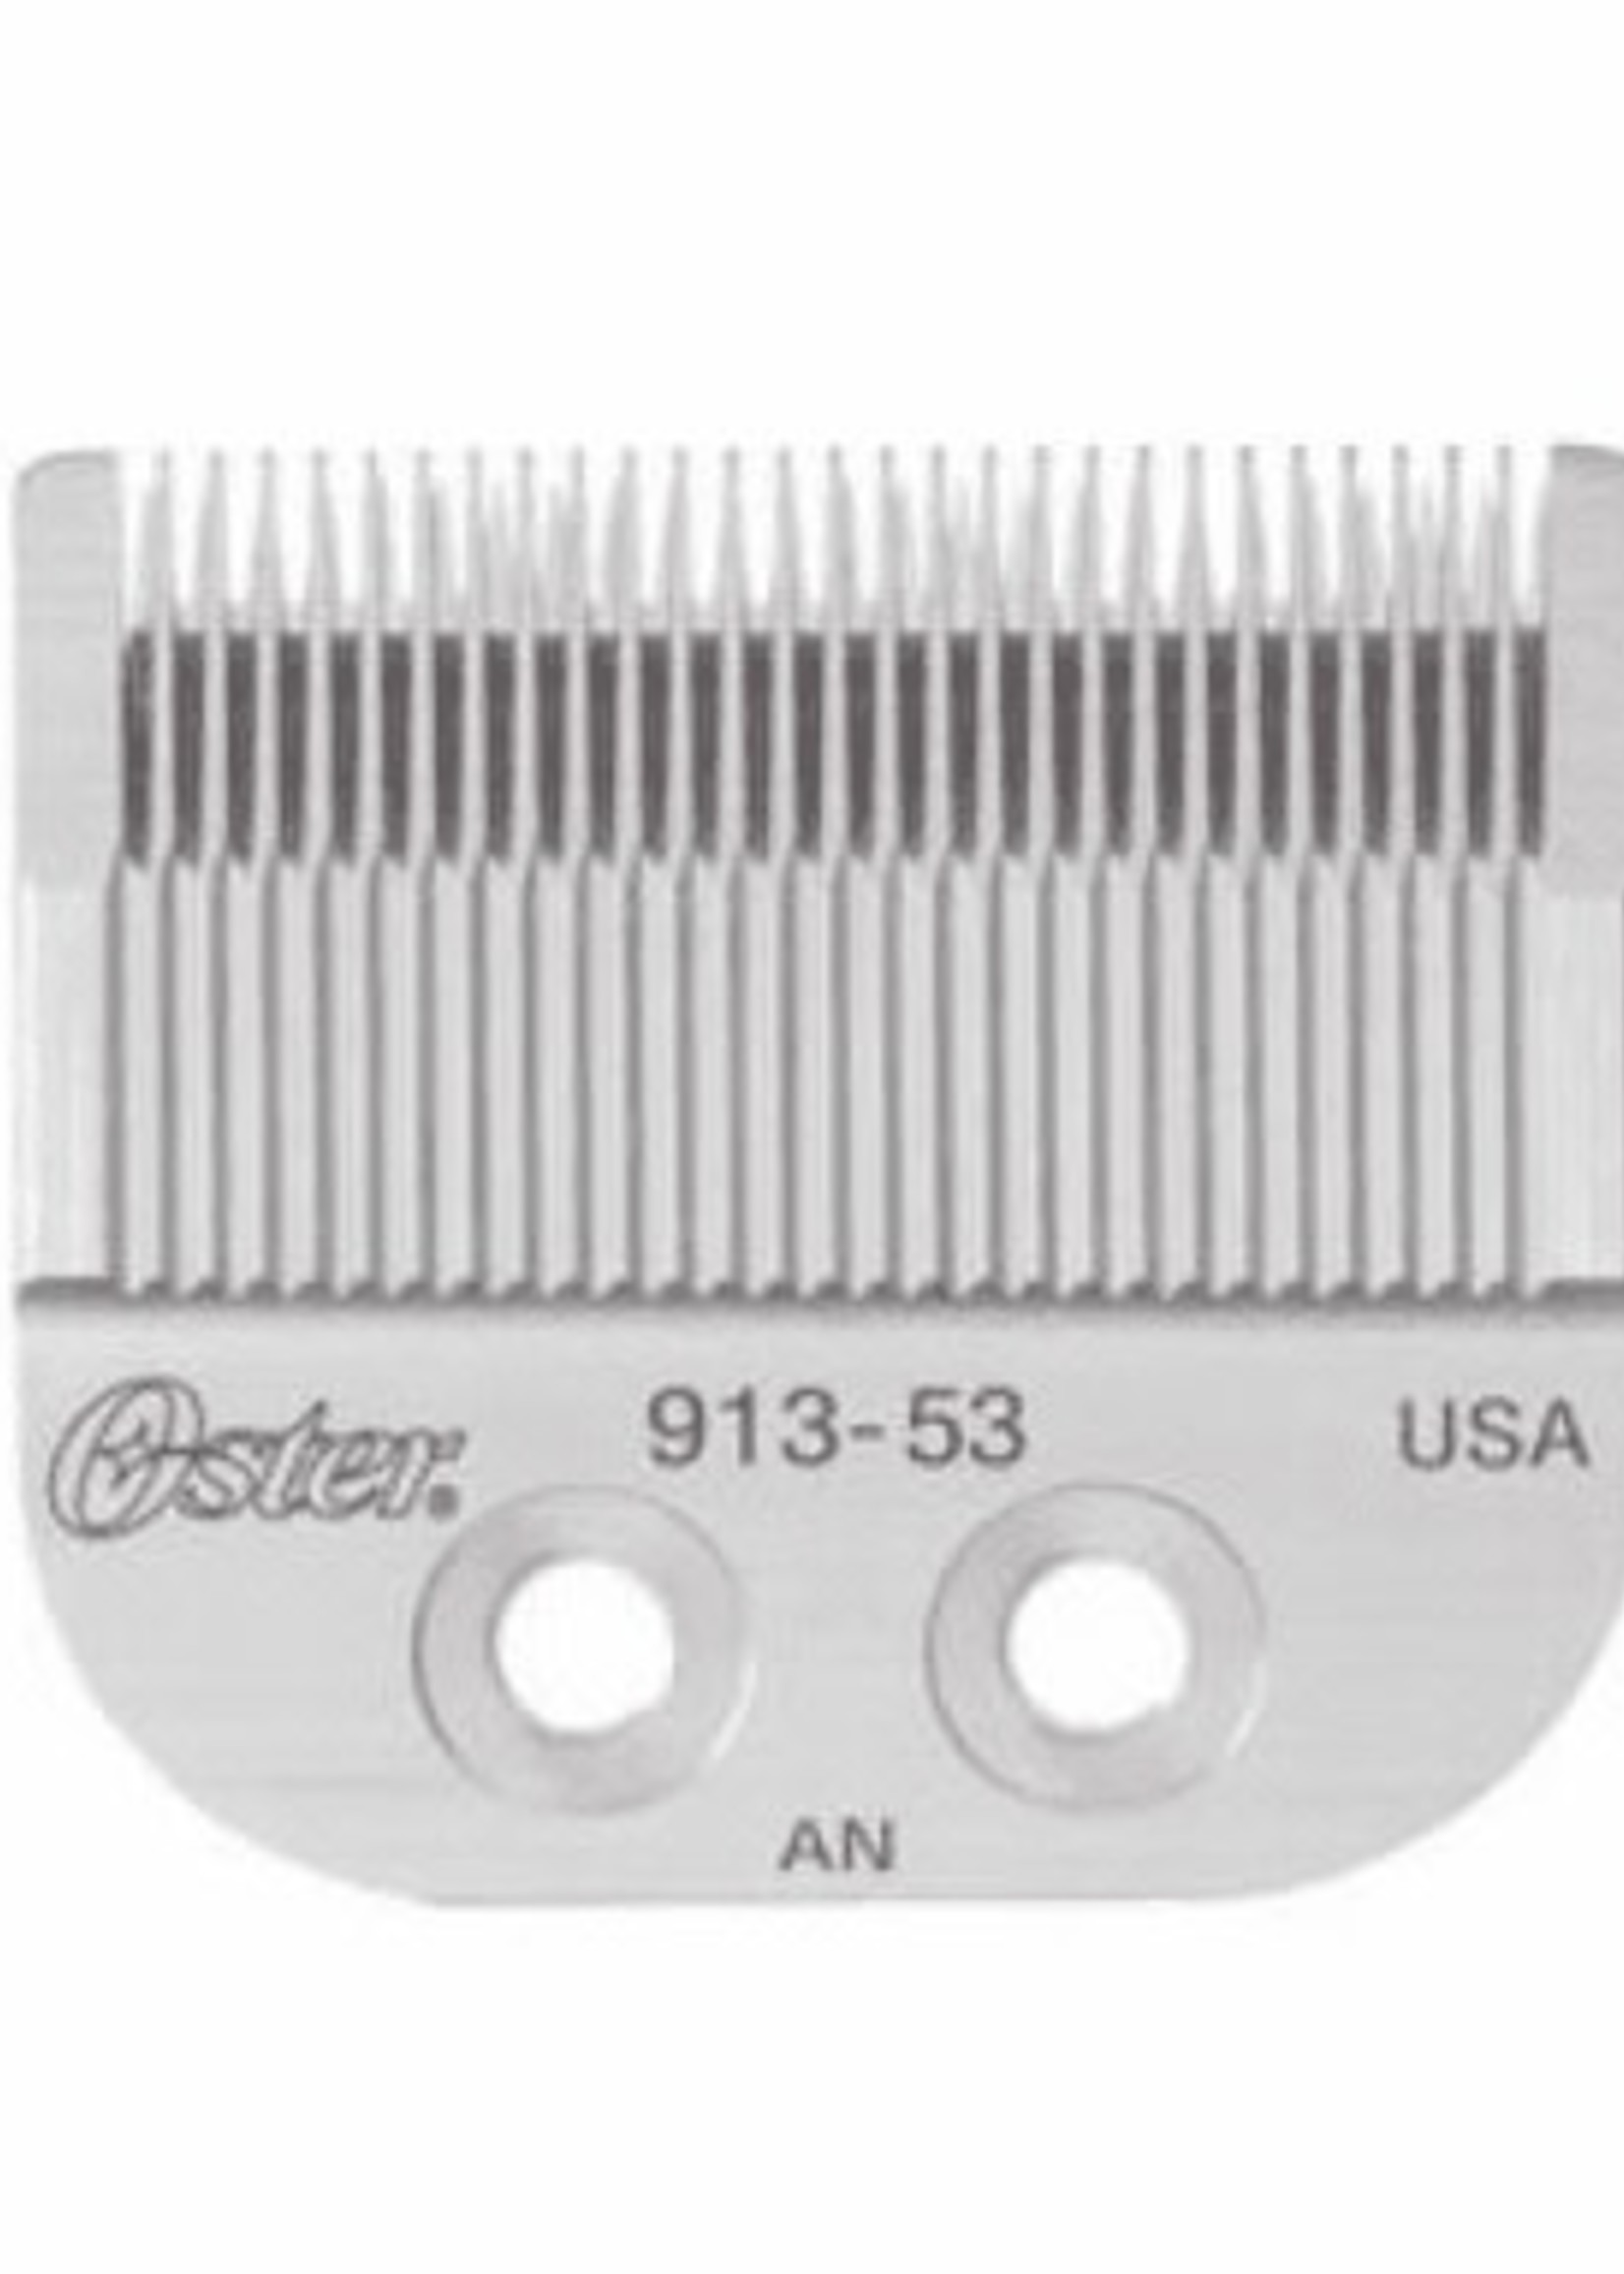 Oster Fast feed blade